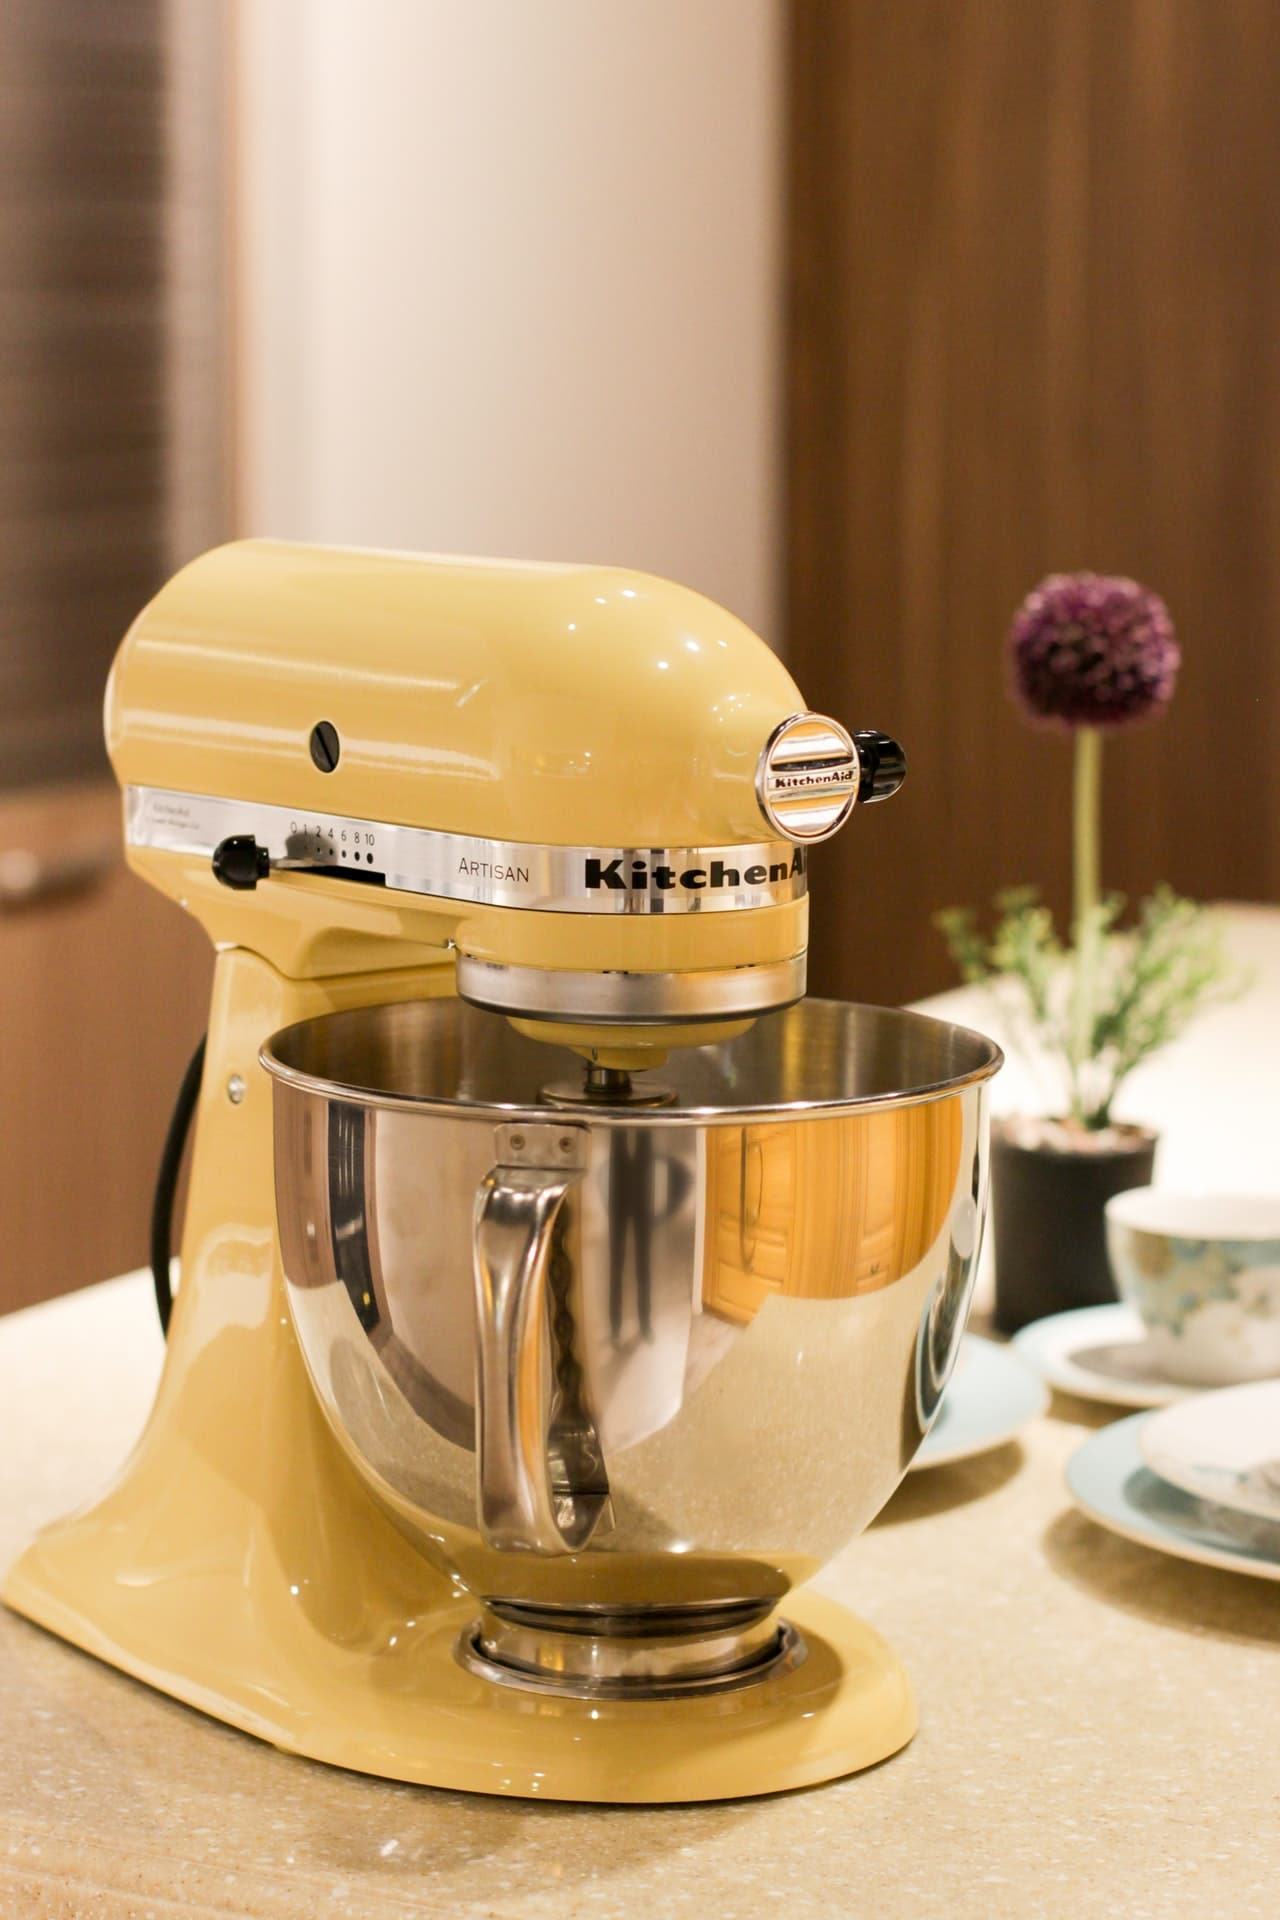 A stand mixer - packing your kitchen for an international move